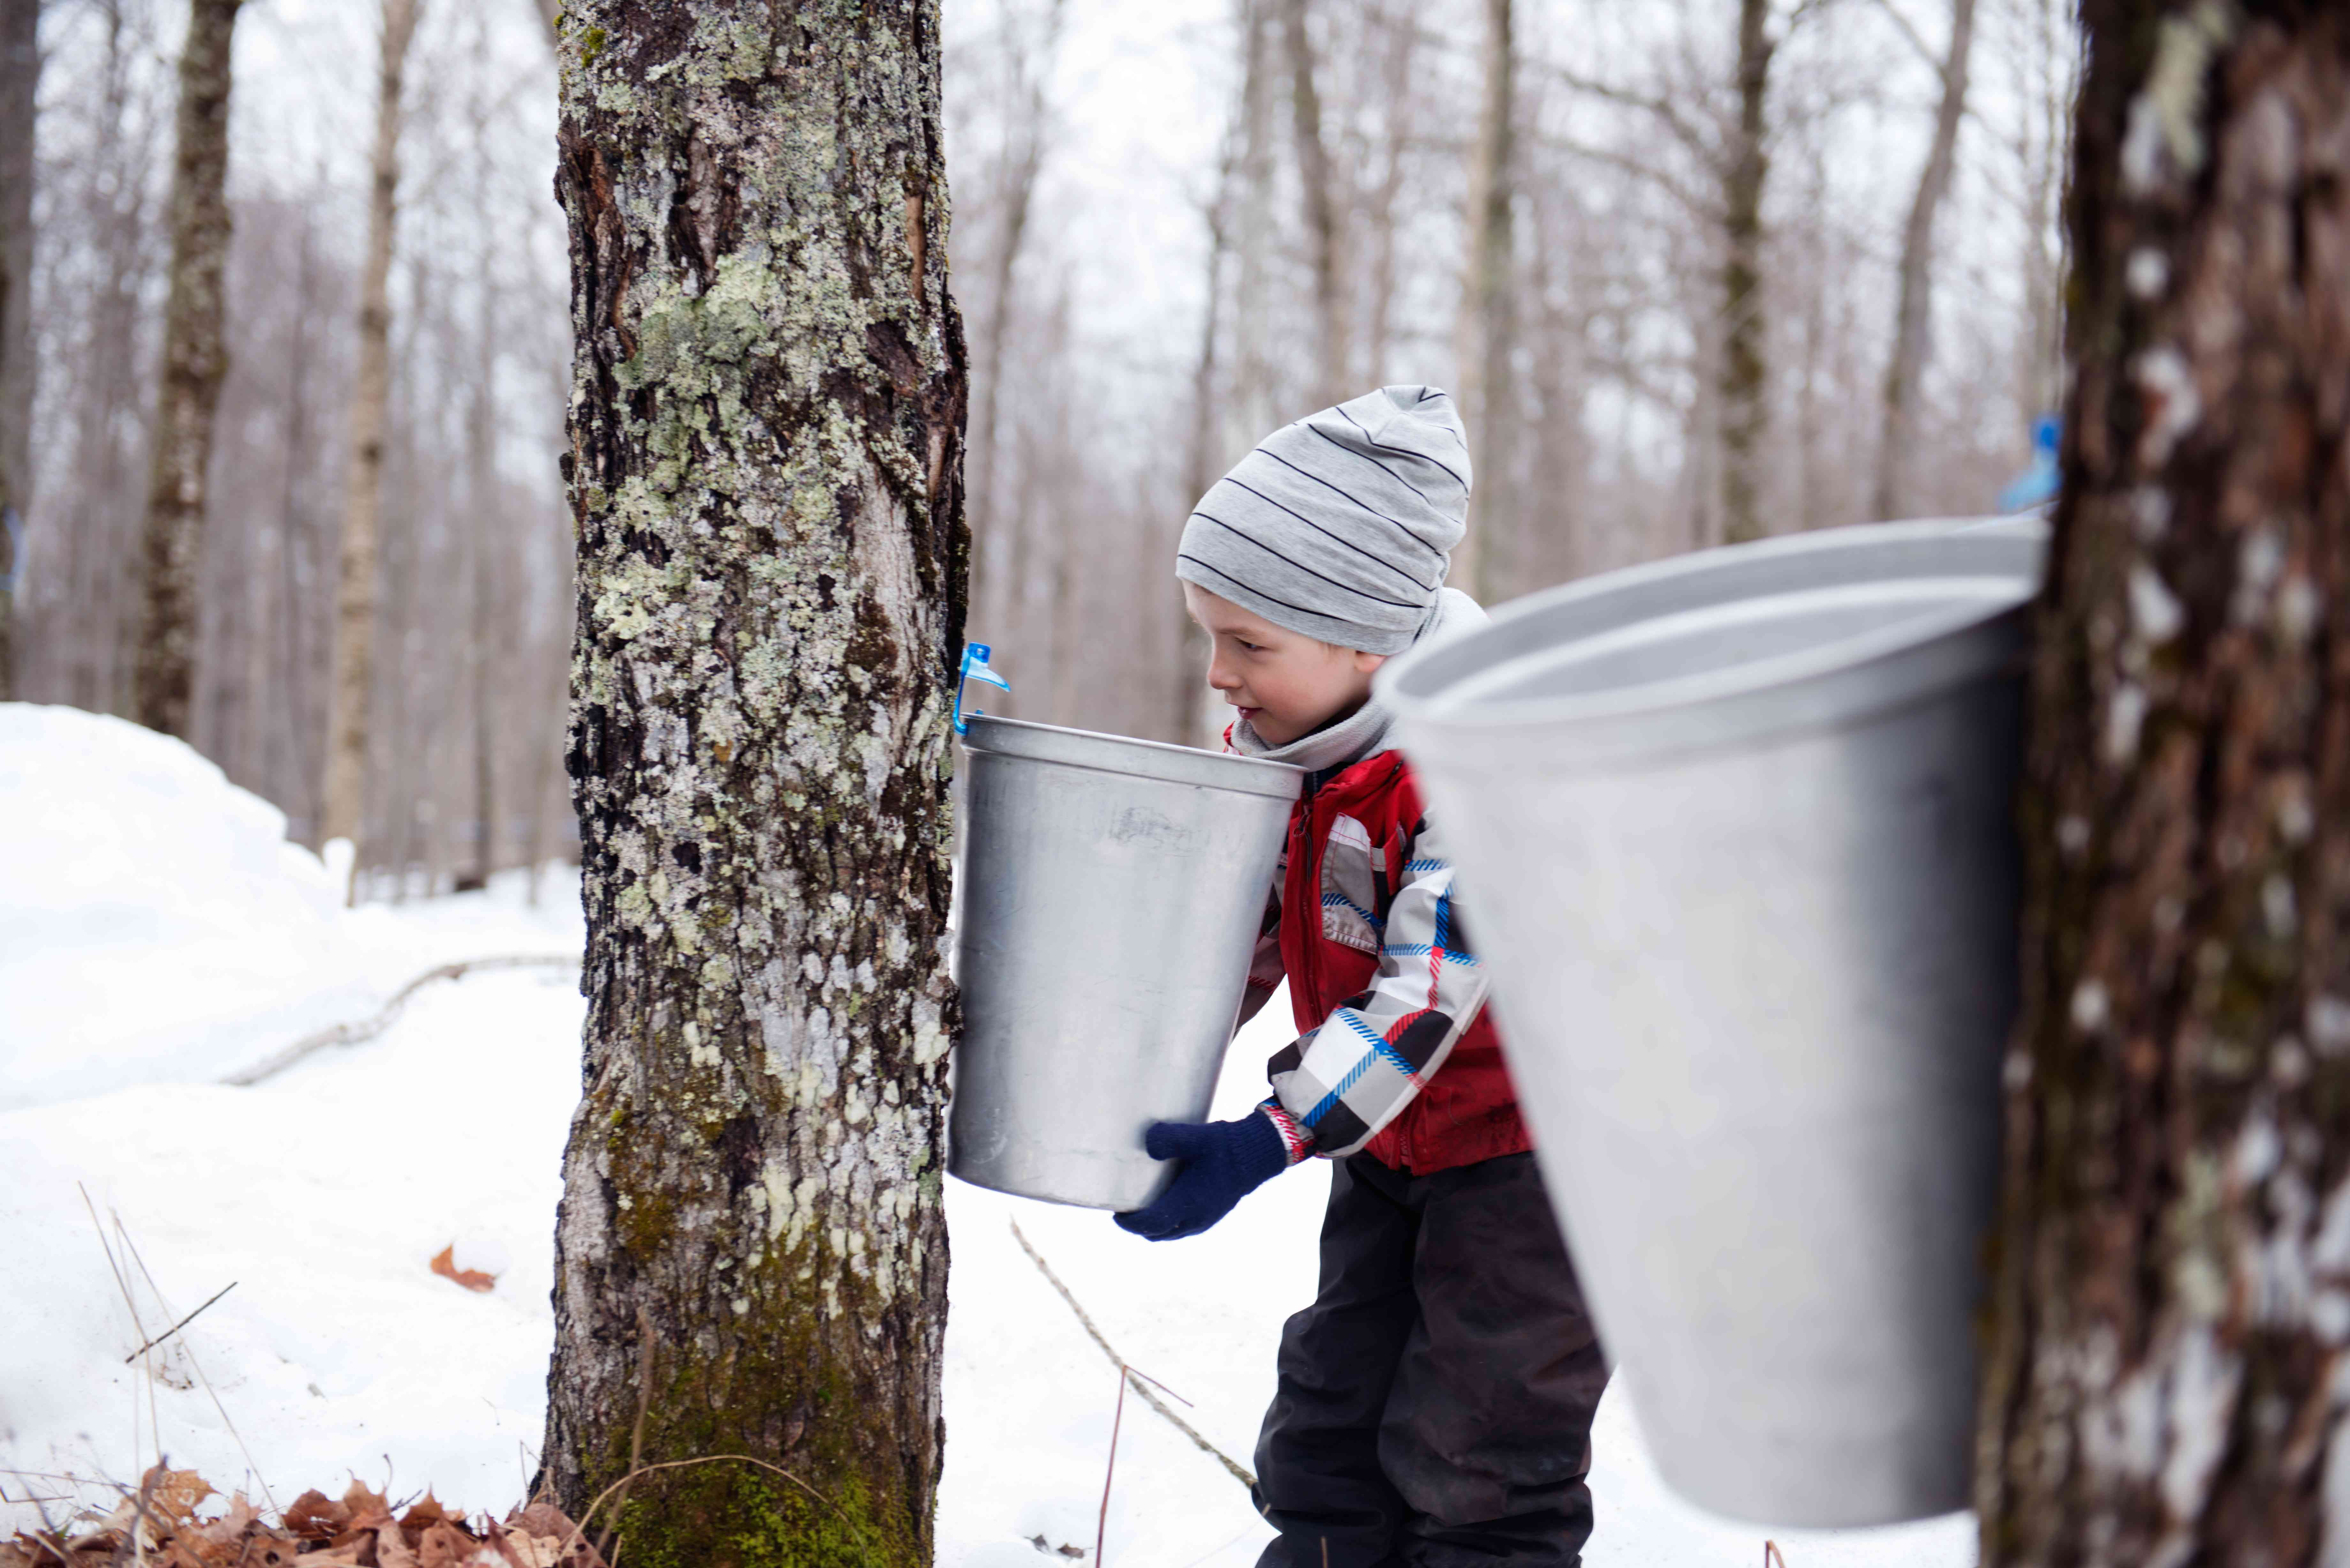 Child collecting maple syrup from tree in winter